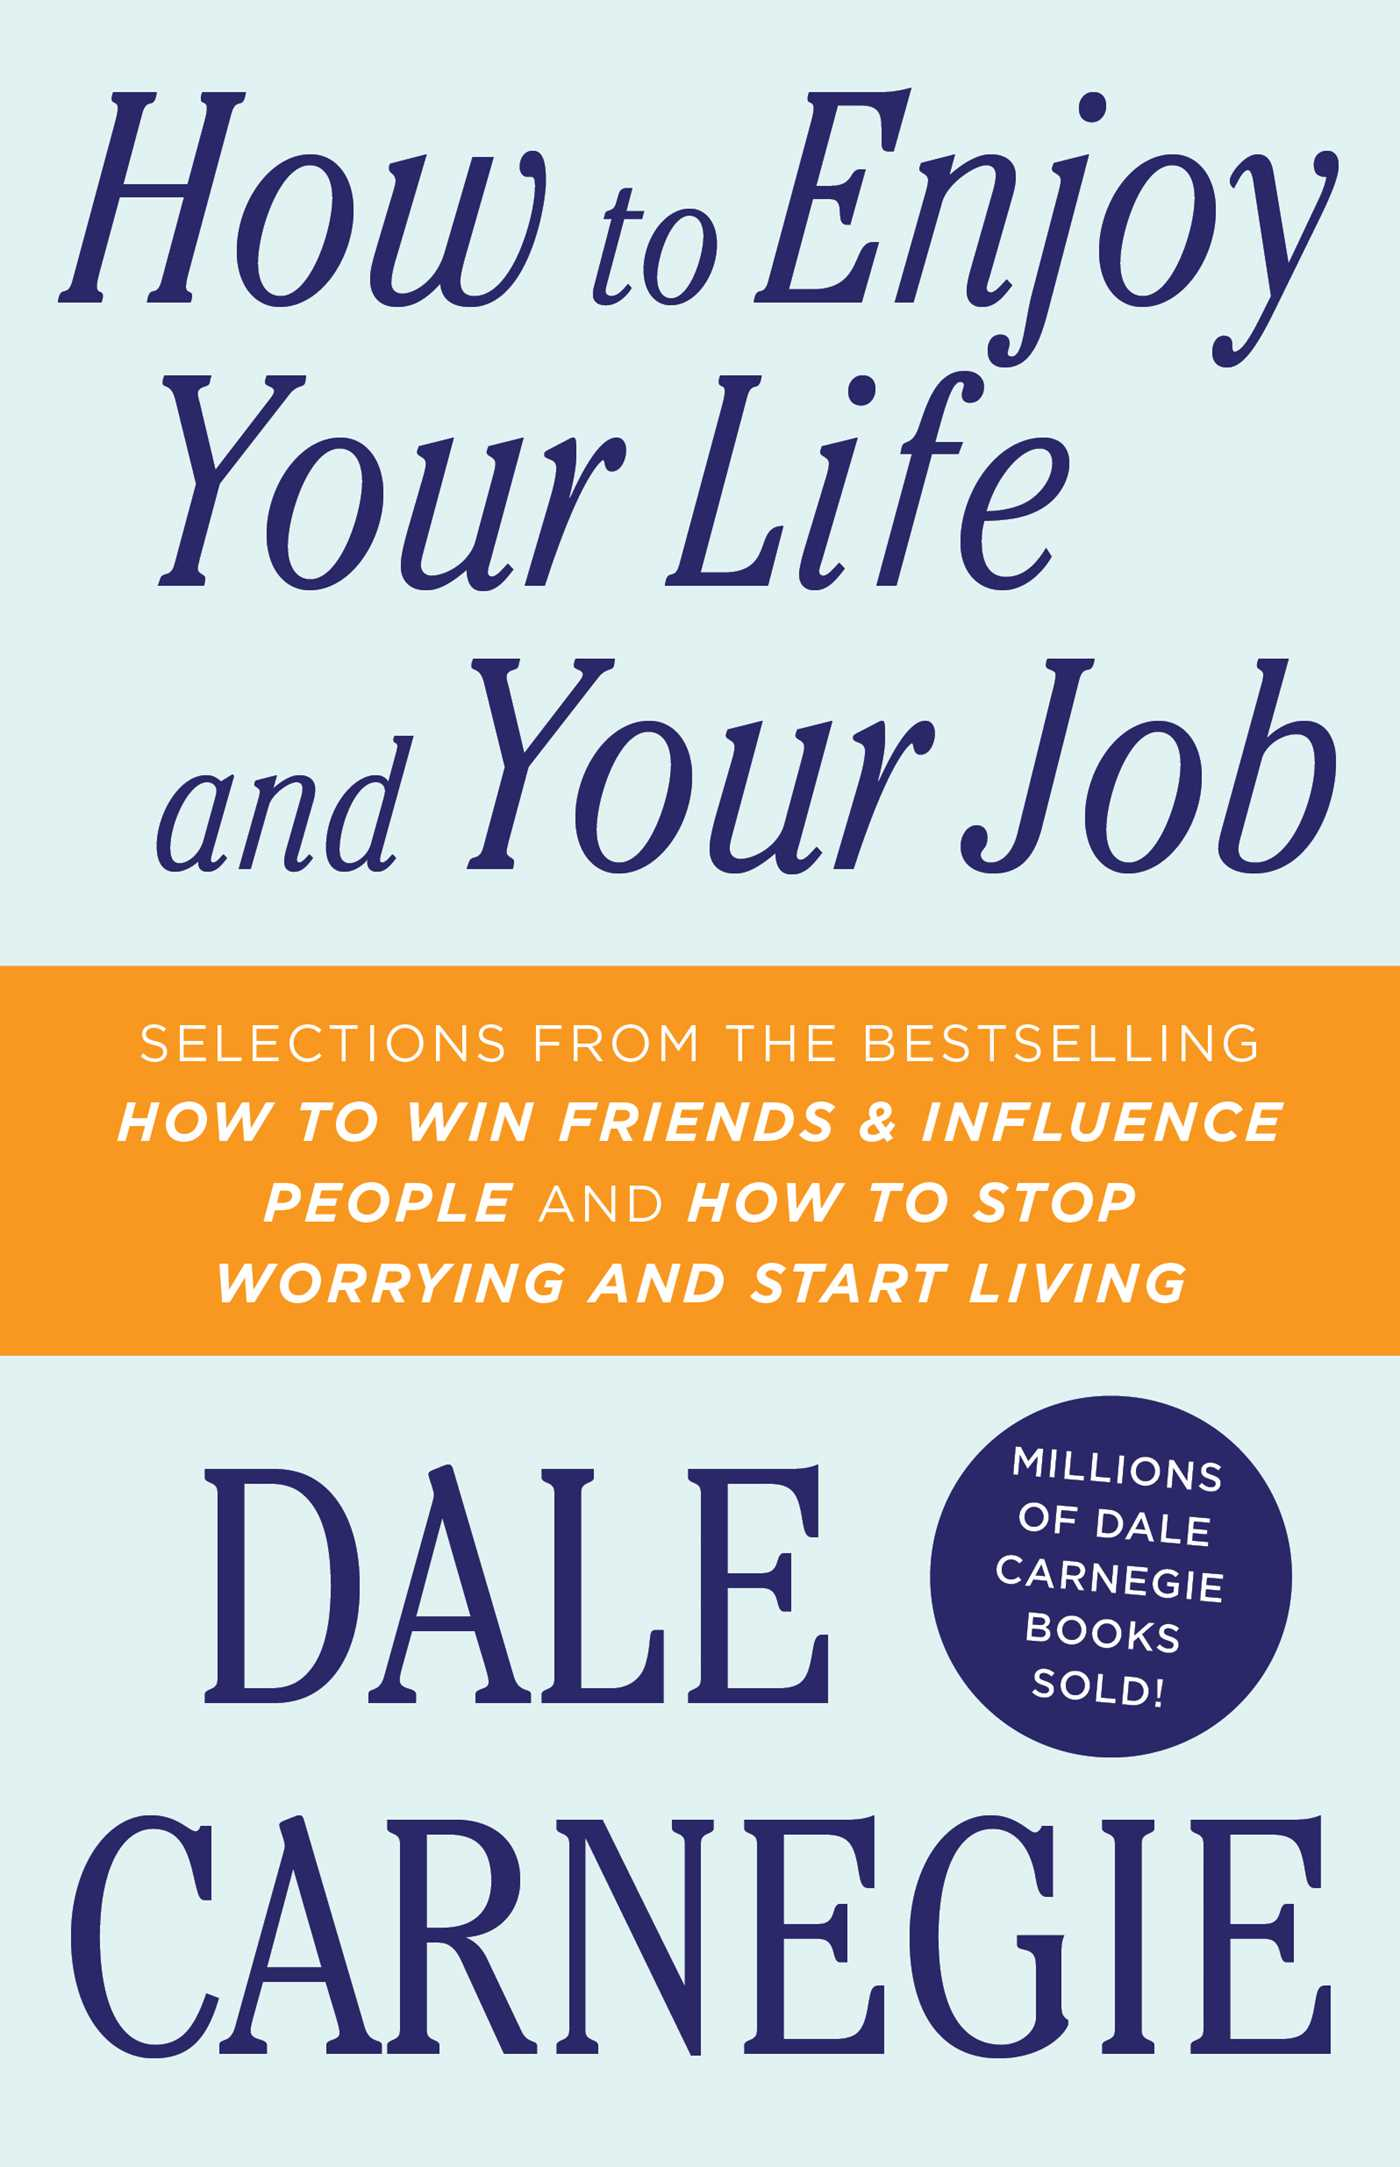 How to enjoy your life and your job 9781451621730 hr